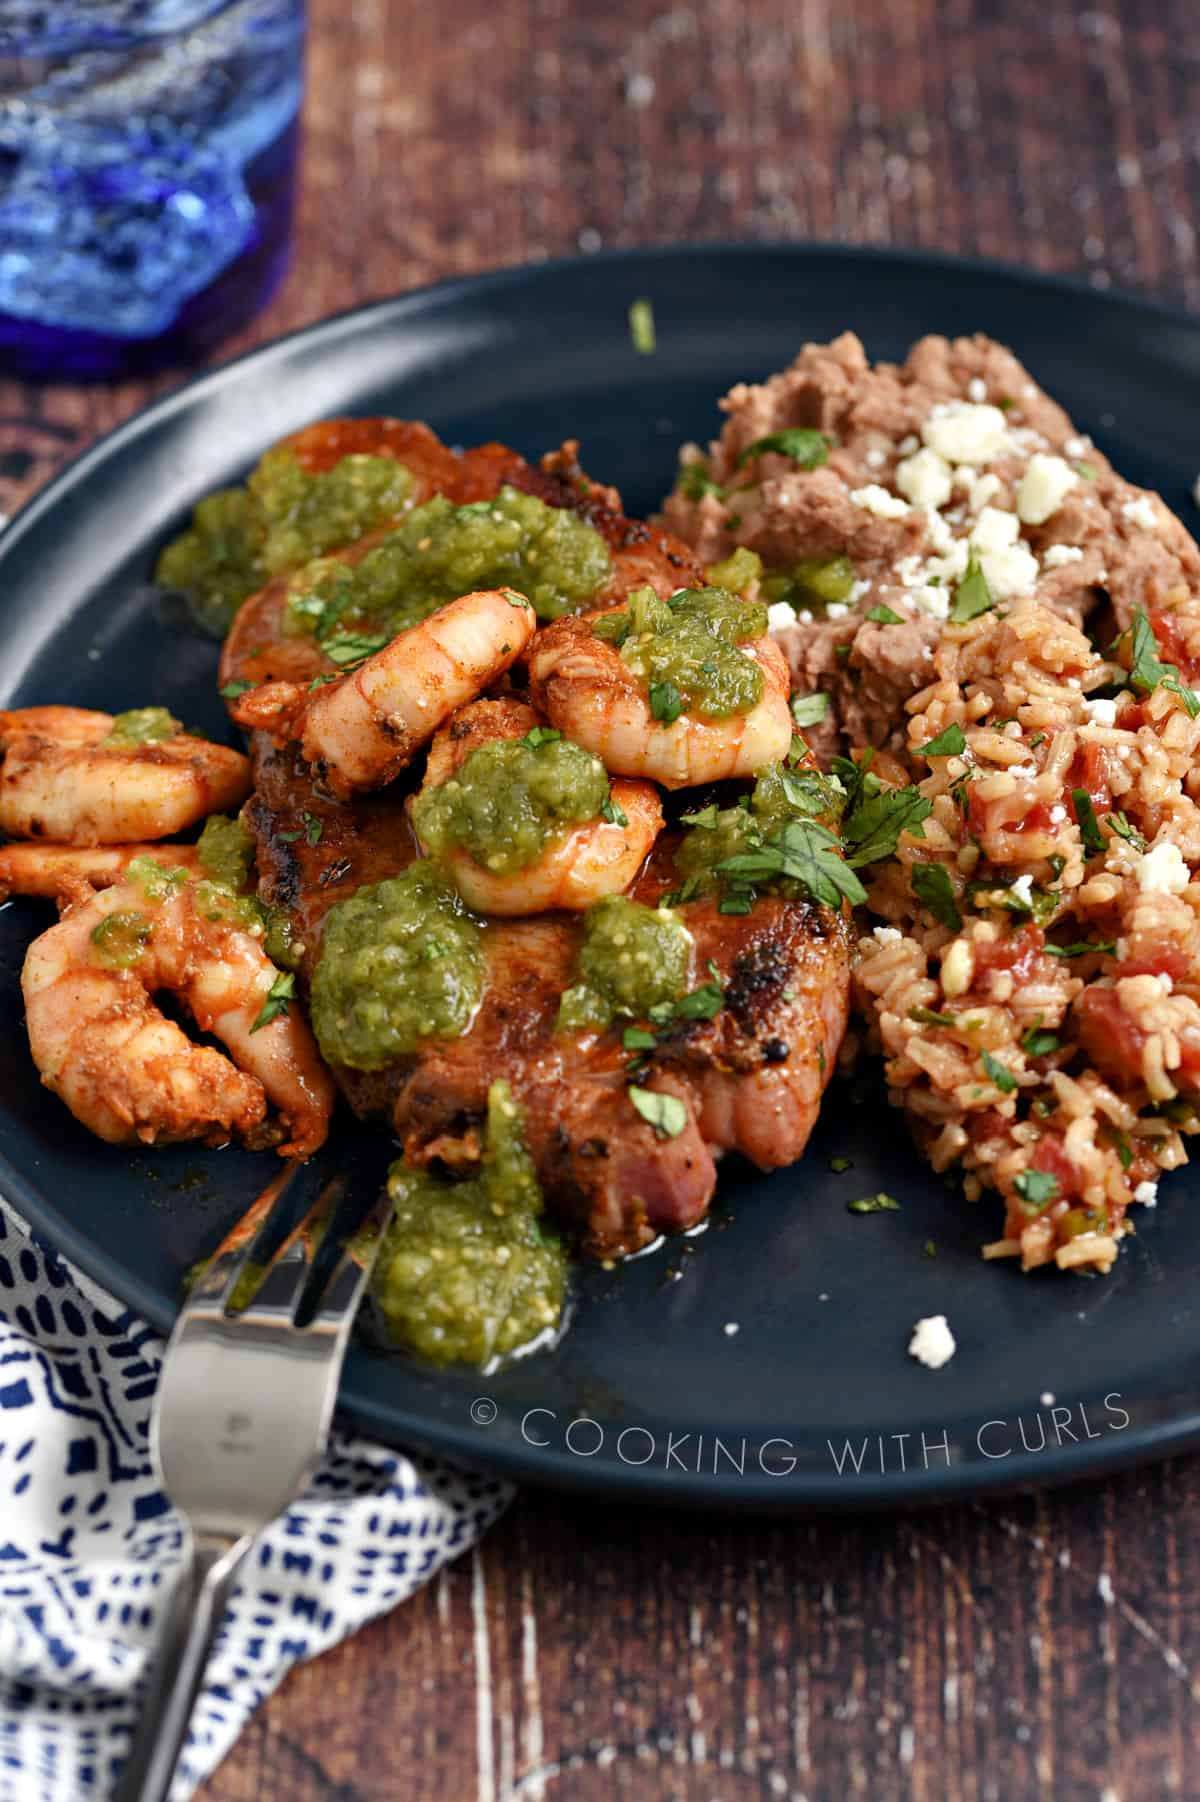 Mexican Seasoning Recipe on grilled steak and shrimp with refried beans and Spanish rice on the side.